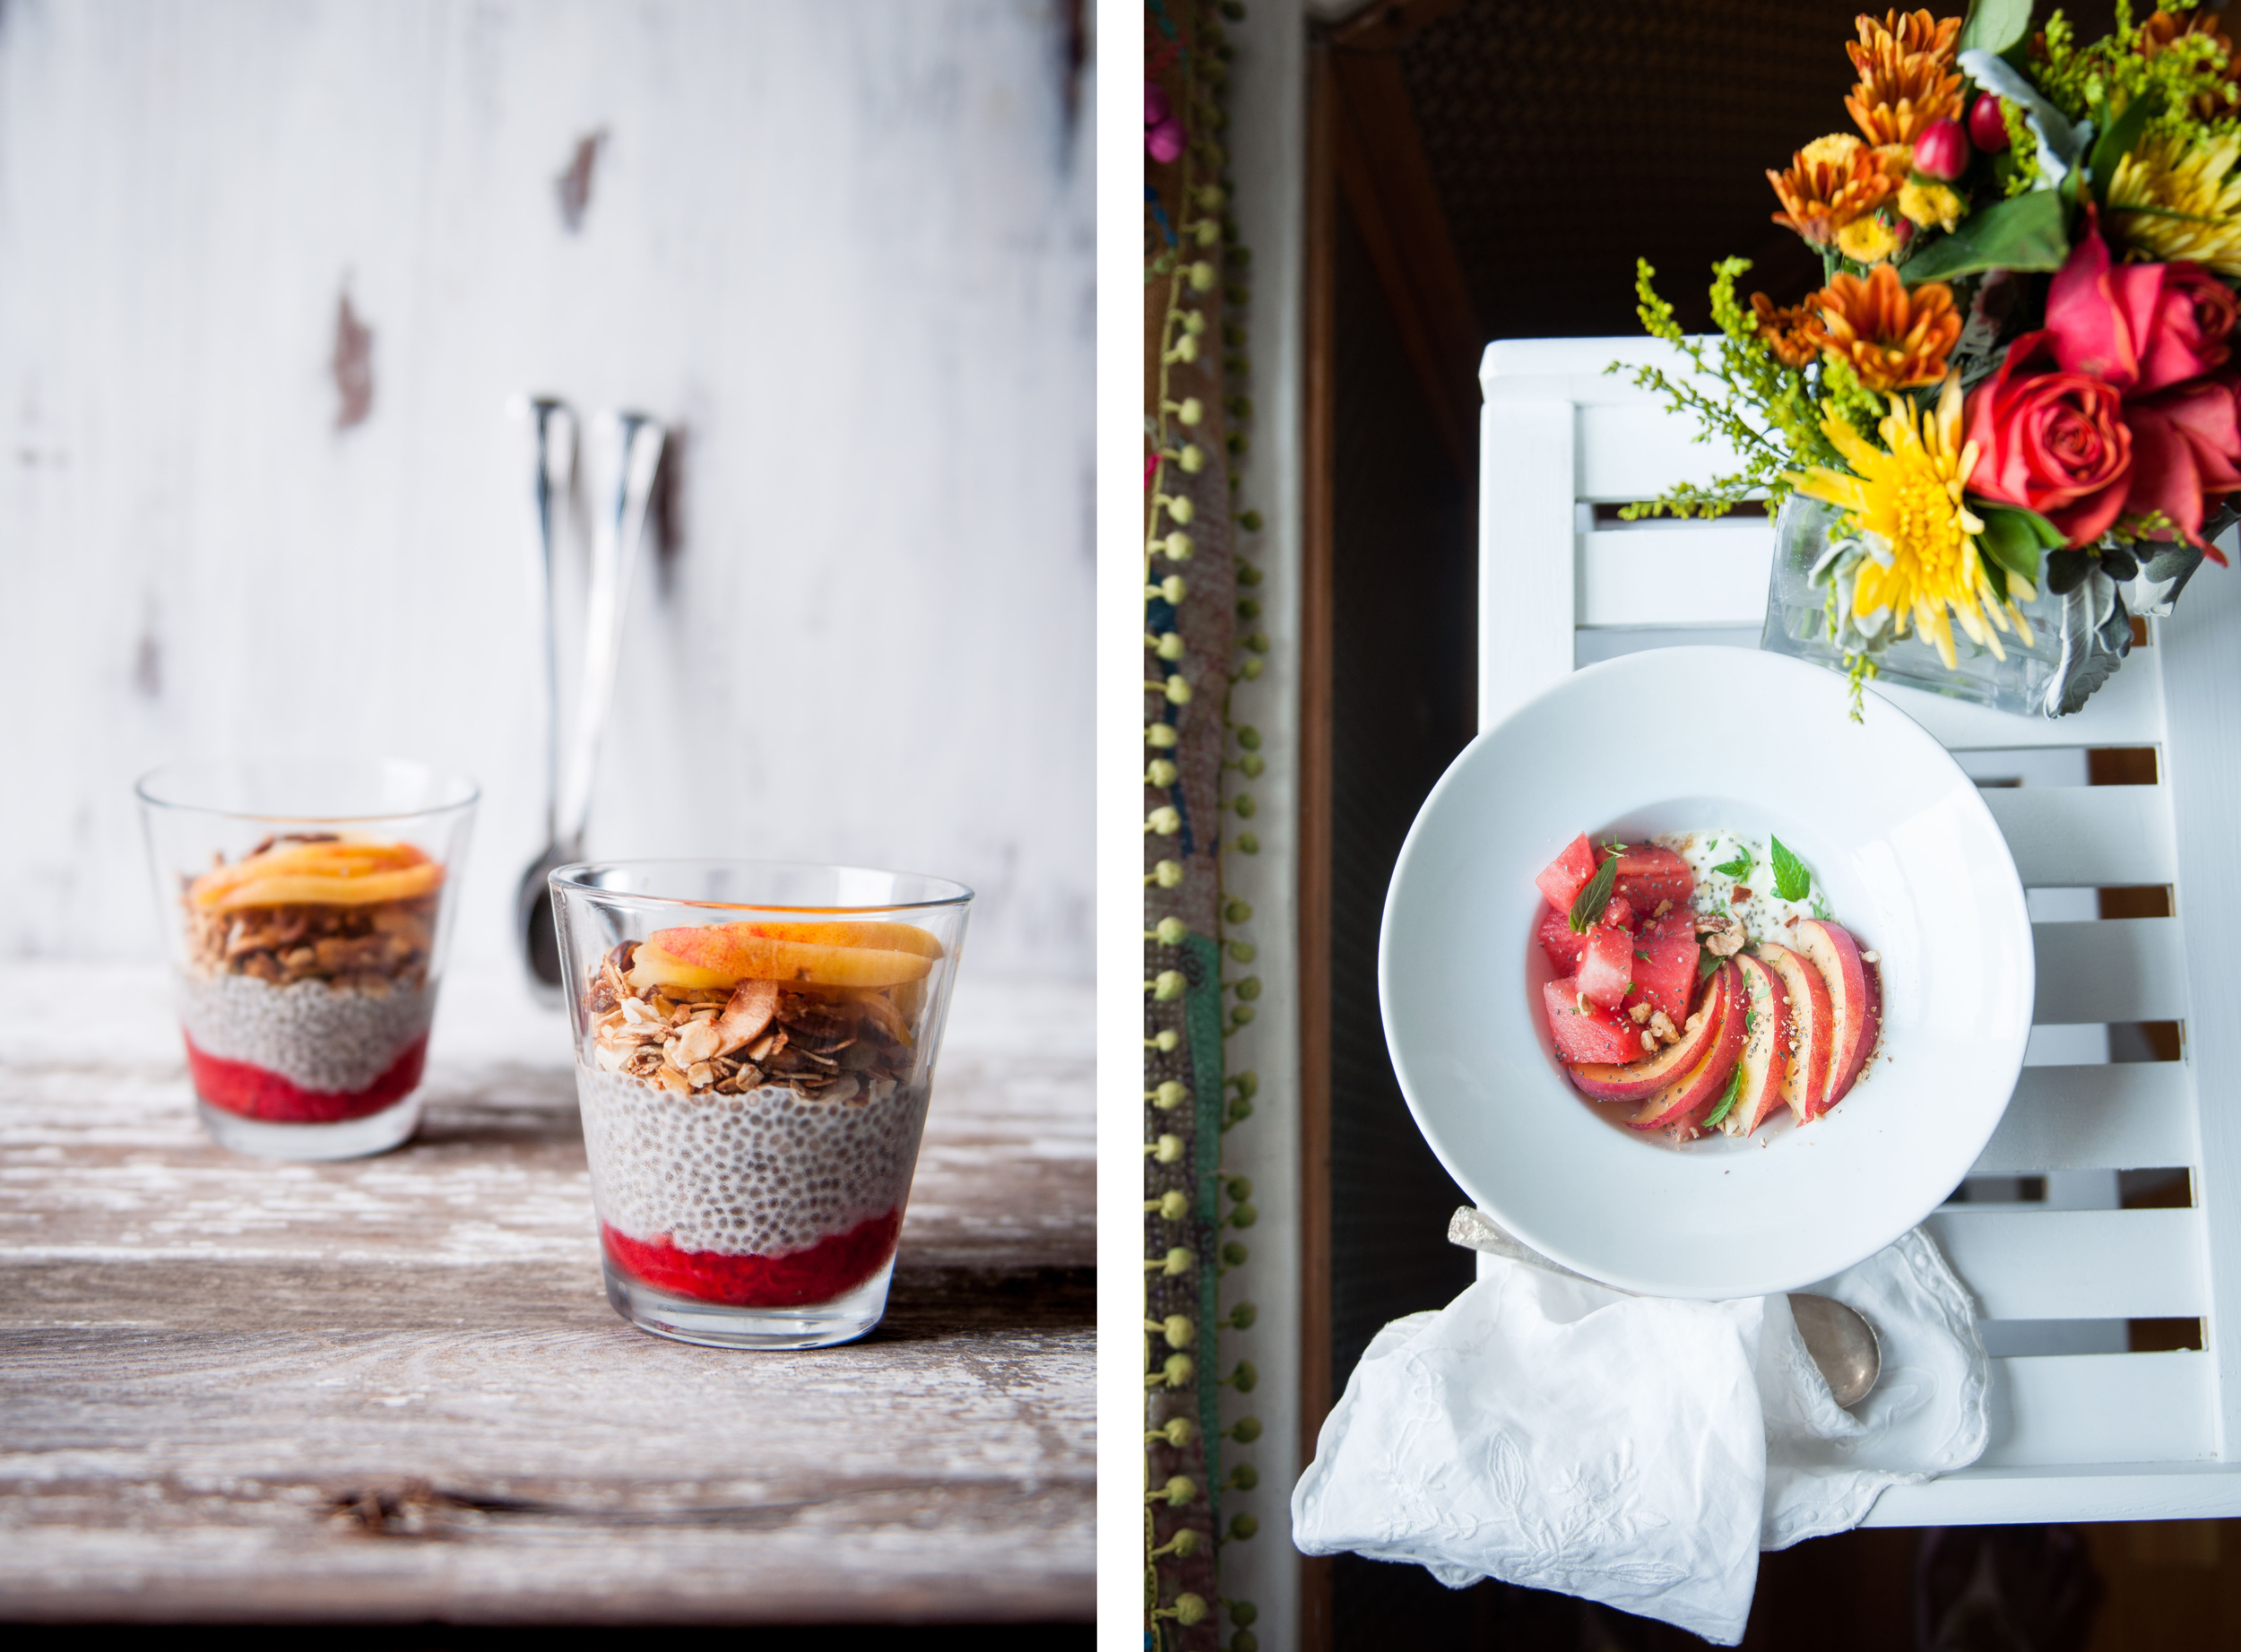 1. Chia-almond milk pudding with Rhubarb and strawberry compote, coconut granola and fresh peach slices | 2.Chia yogurt, watermelon and peach salad, with fresh mint leaves